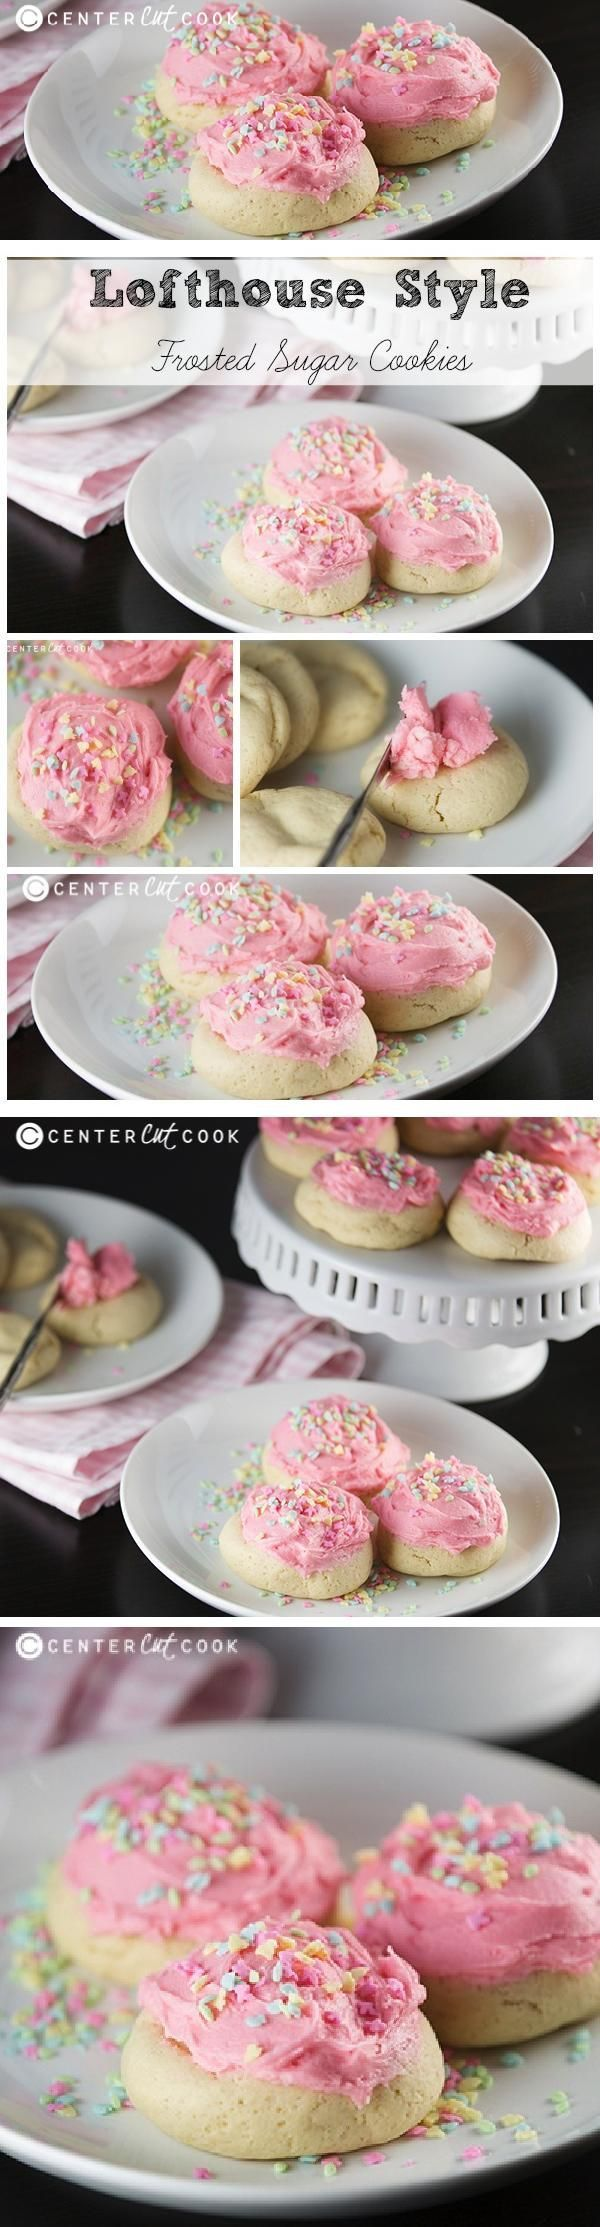 Super soft Lofthouse style Sugar Cookies, a copycat recipe, made from scratch with that irresistible frosting and sprinkles!